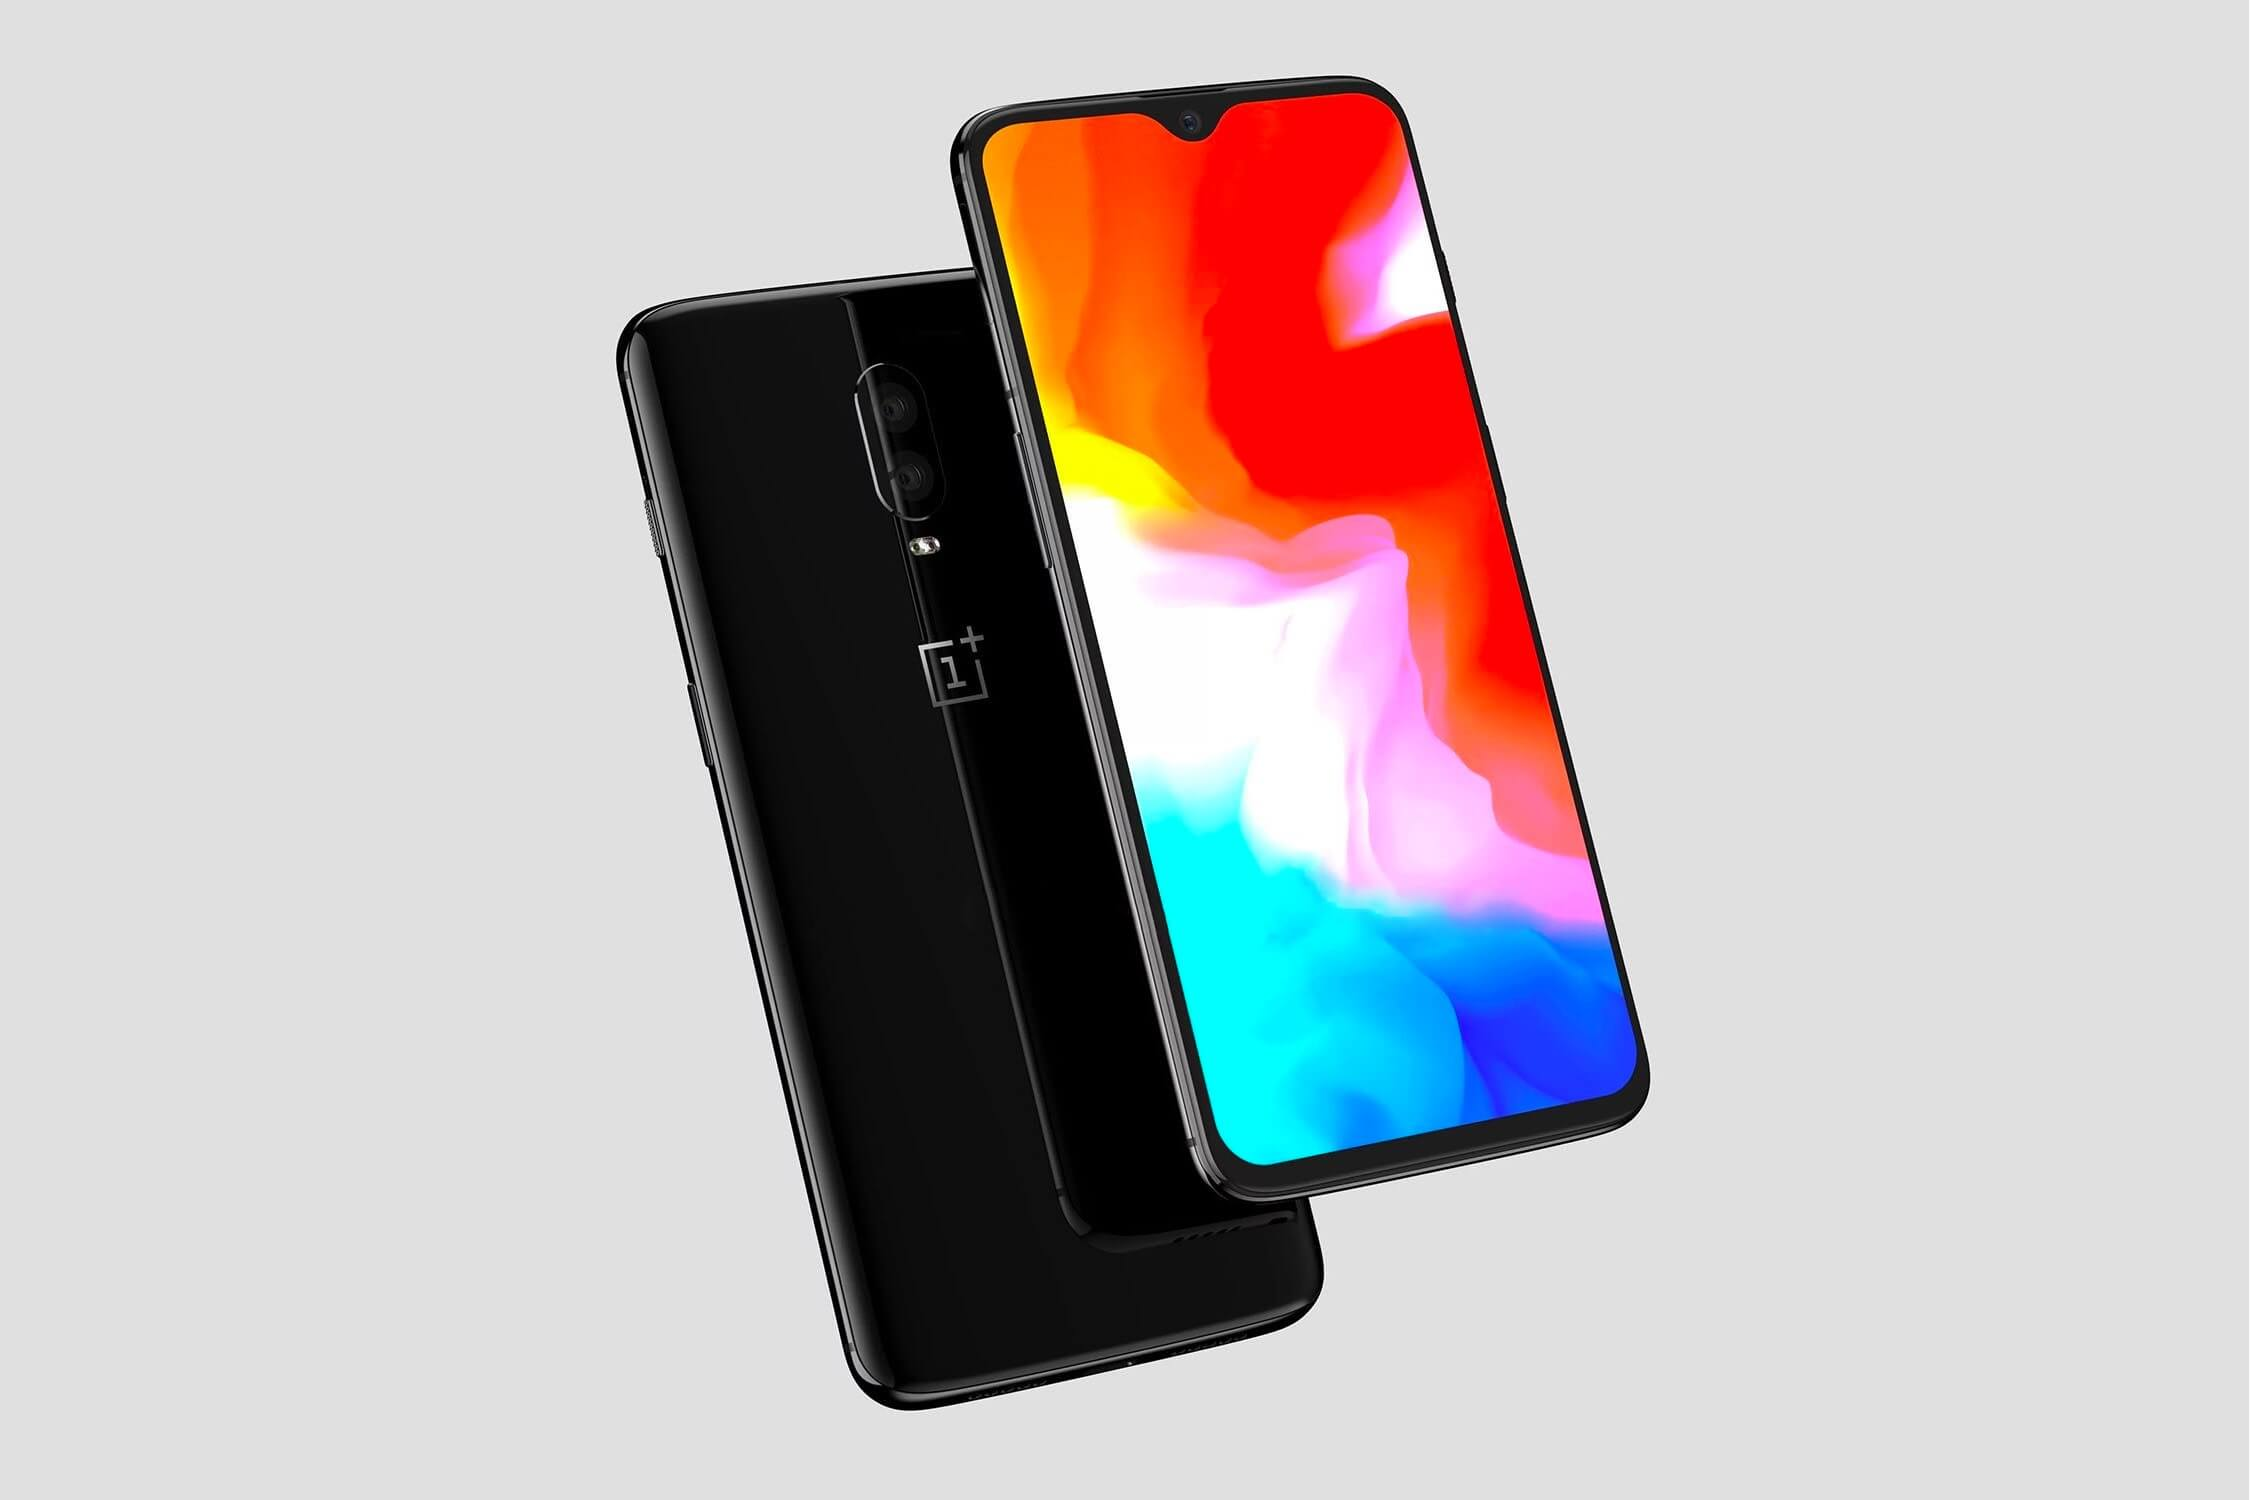 OnePlus forced to move 6T launch date because of Apple's event